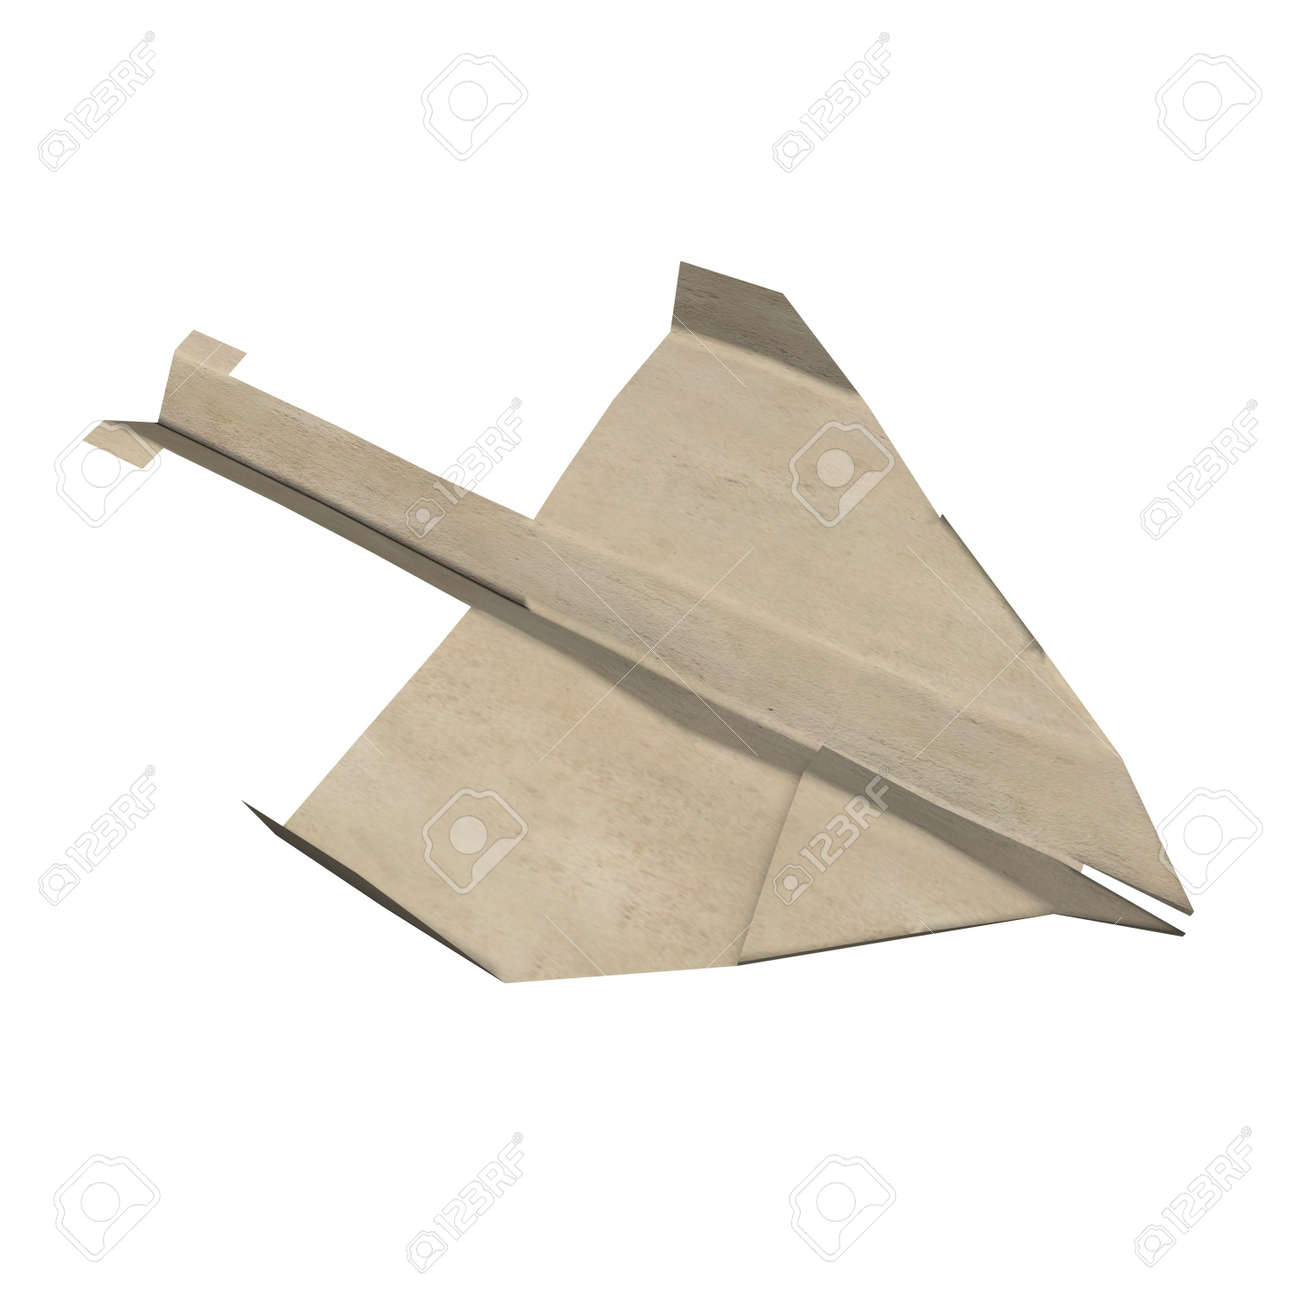 3d render of paper plane Stock Photo - 12915641